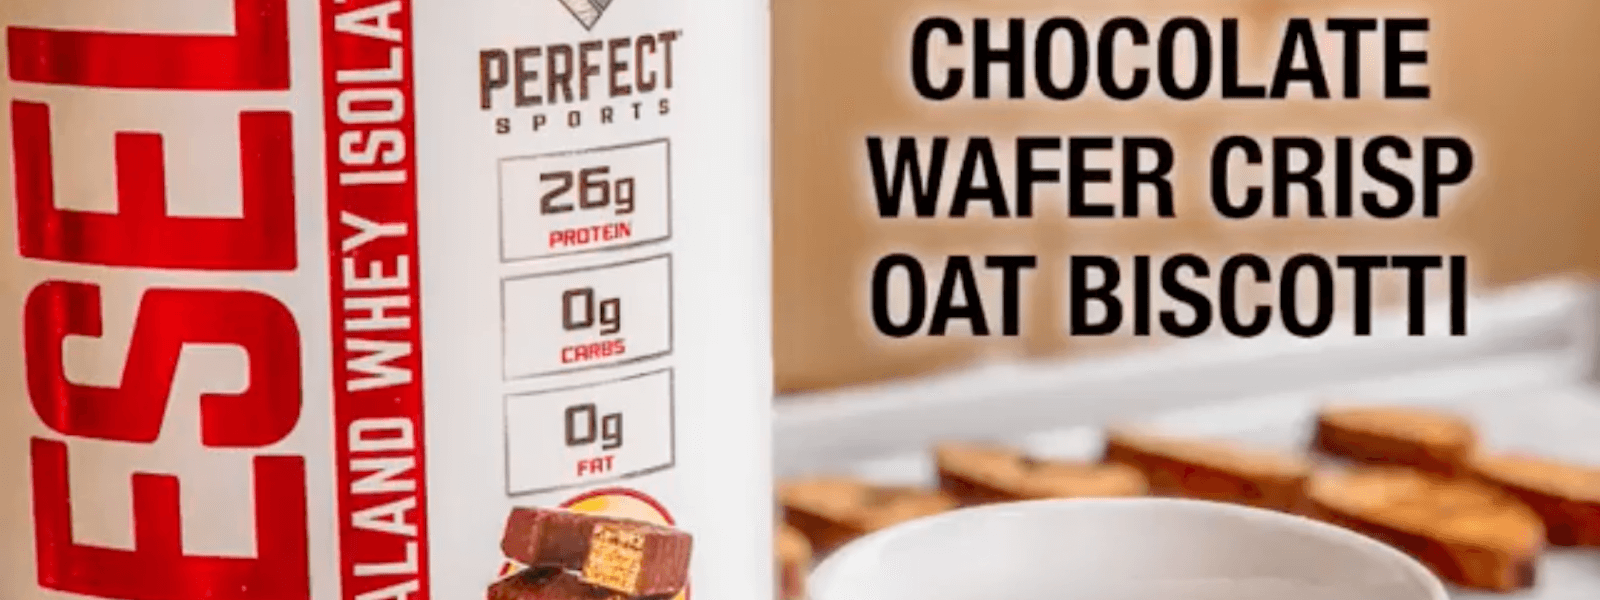 Perfect Sports Diesel Chocolate Wafer Crisp Oat Biscotti Recipe Supplements Canada